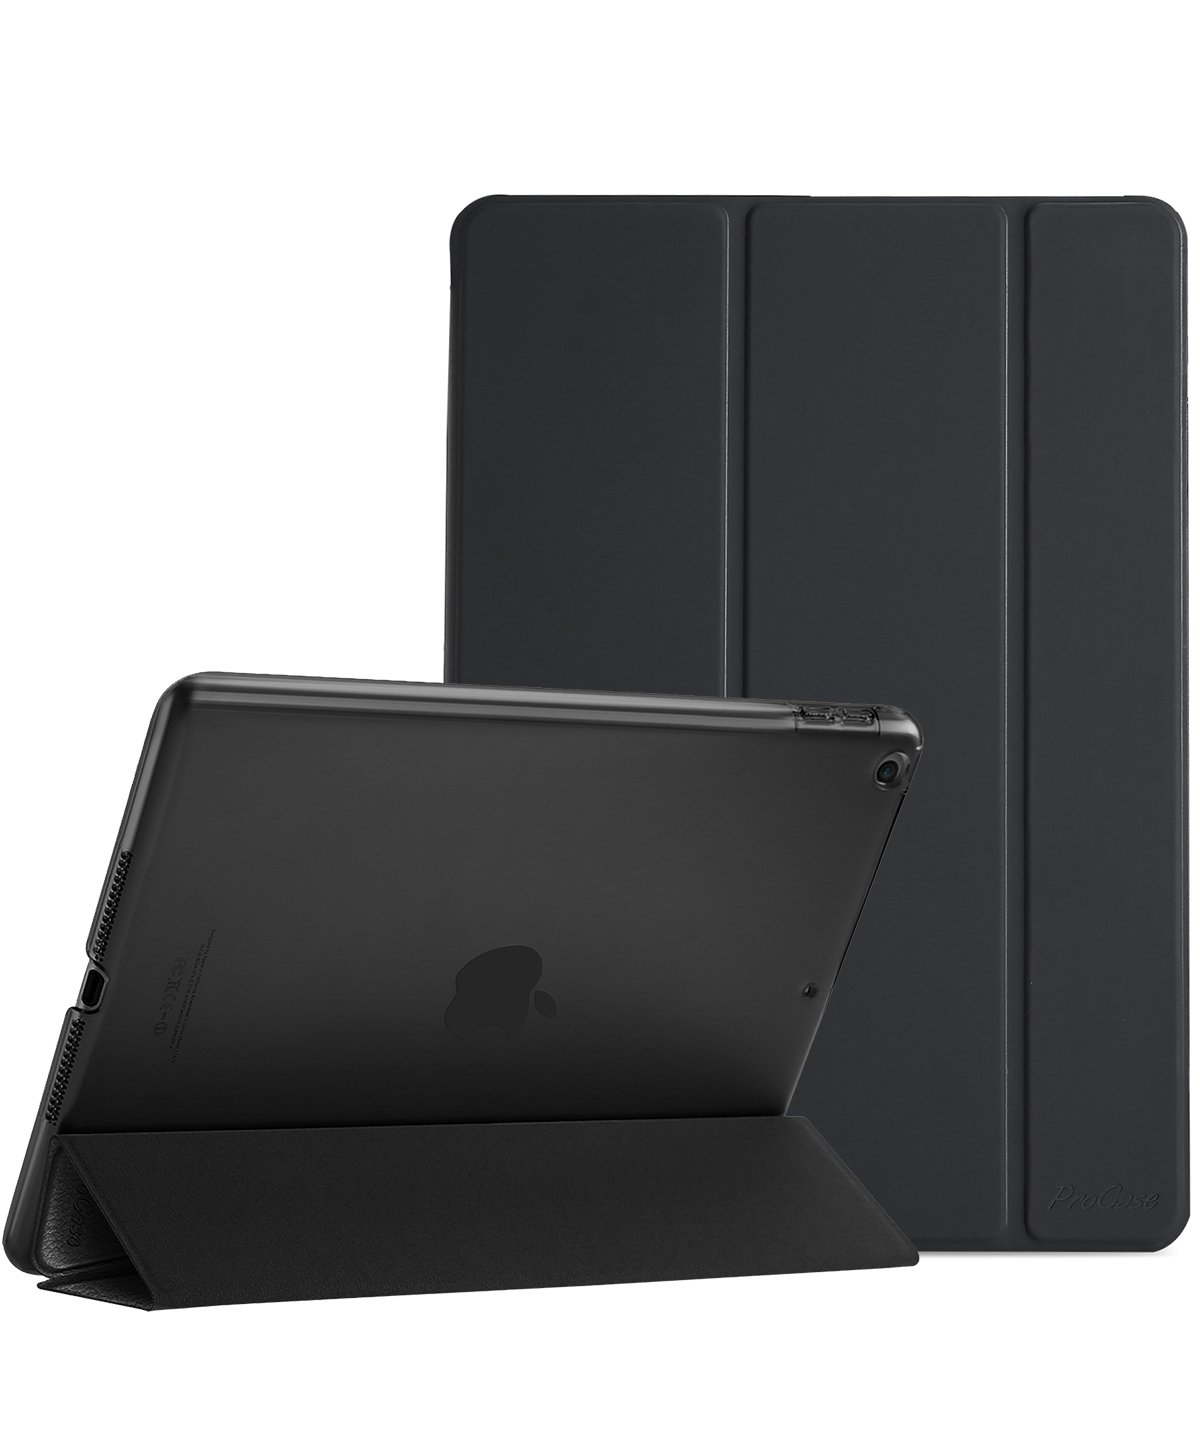 애플 아이패드 6세대 9.7인치 ProCase 경량 반투명 스마트 커버 - 15 컬러 ProCase iPad 9.7 Case - Ultra Slim Lightweight Stand Case with Translucent Frosted Back Smart Cover